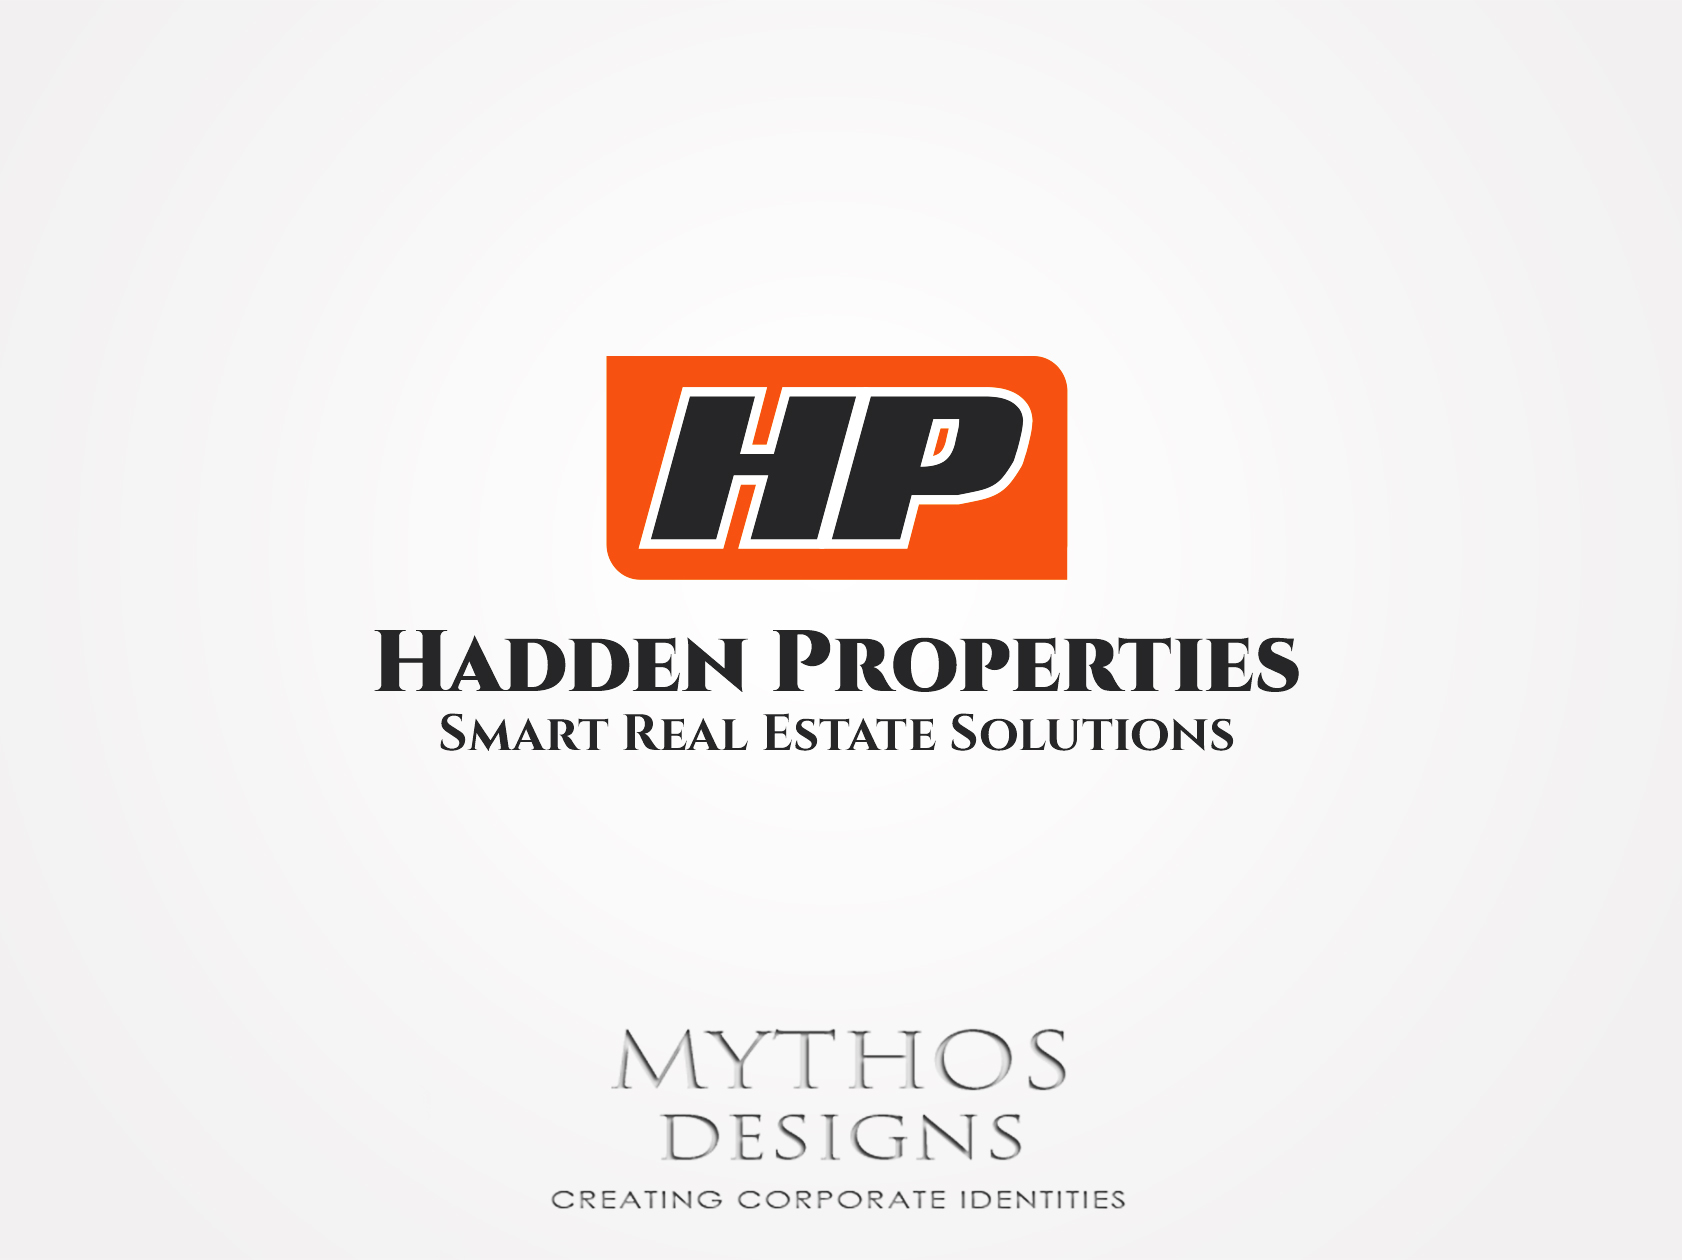 Logo Design by Mythos Designs - Entry No. 78 in the Logo Design Contest Artistic Logo Design for Hadden Properties.